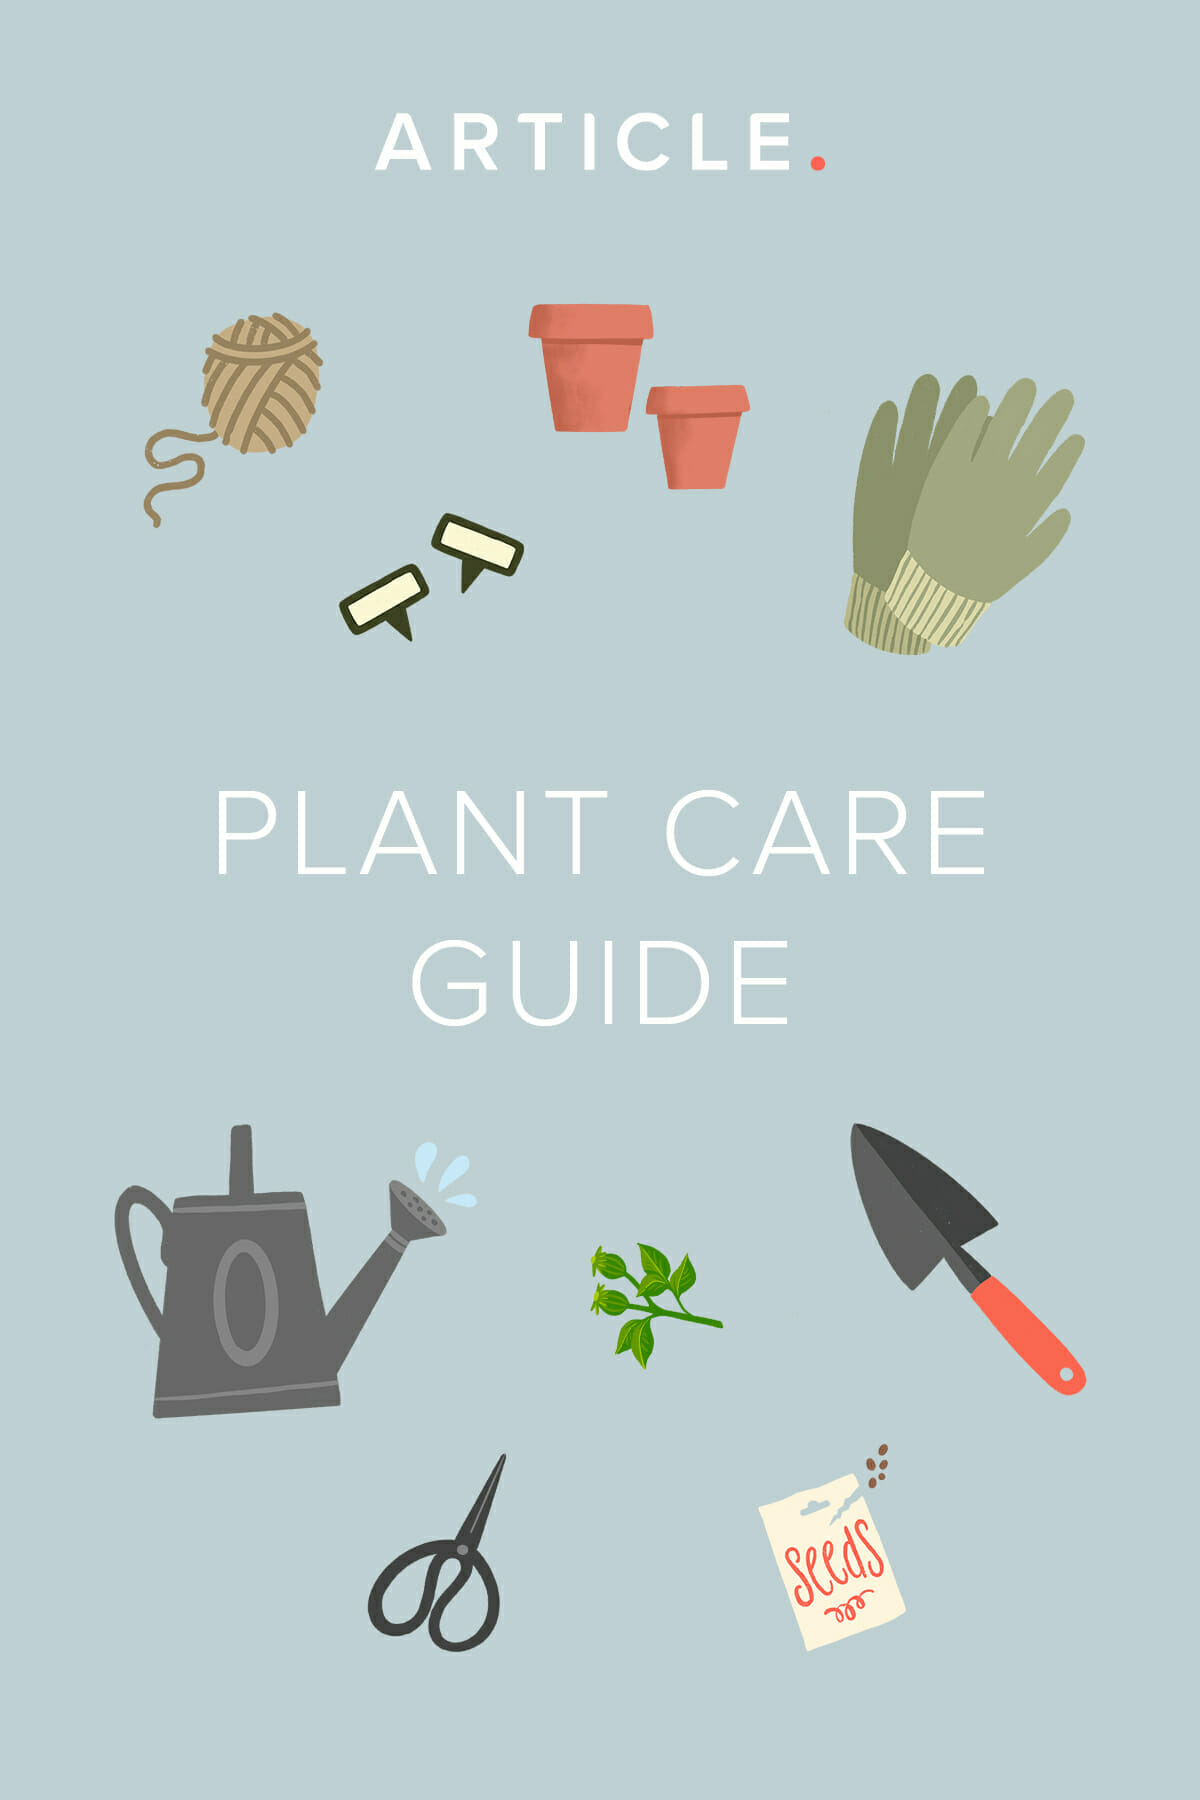 Title page of Article x houseplantjournal's Plant Care Guide